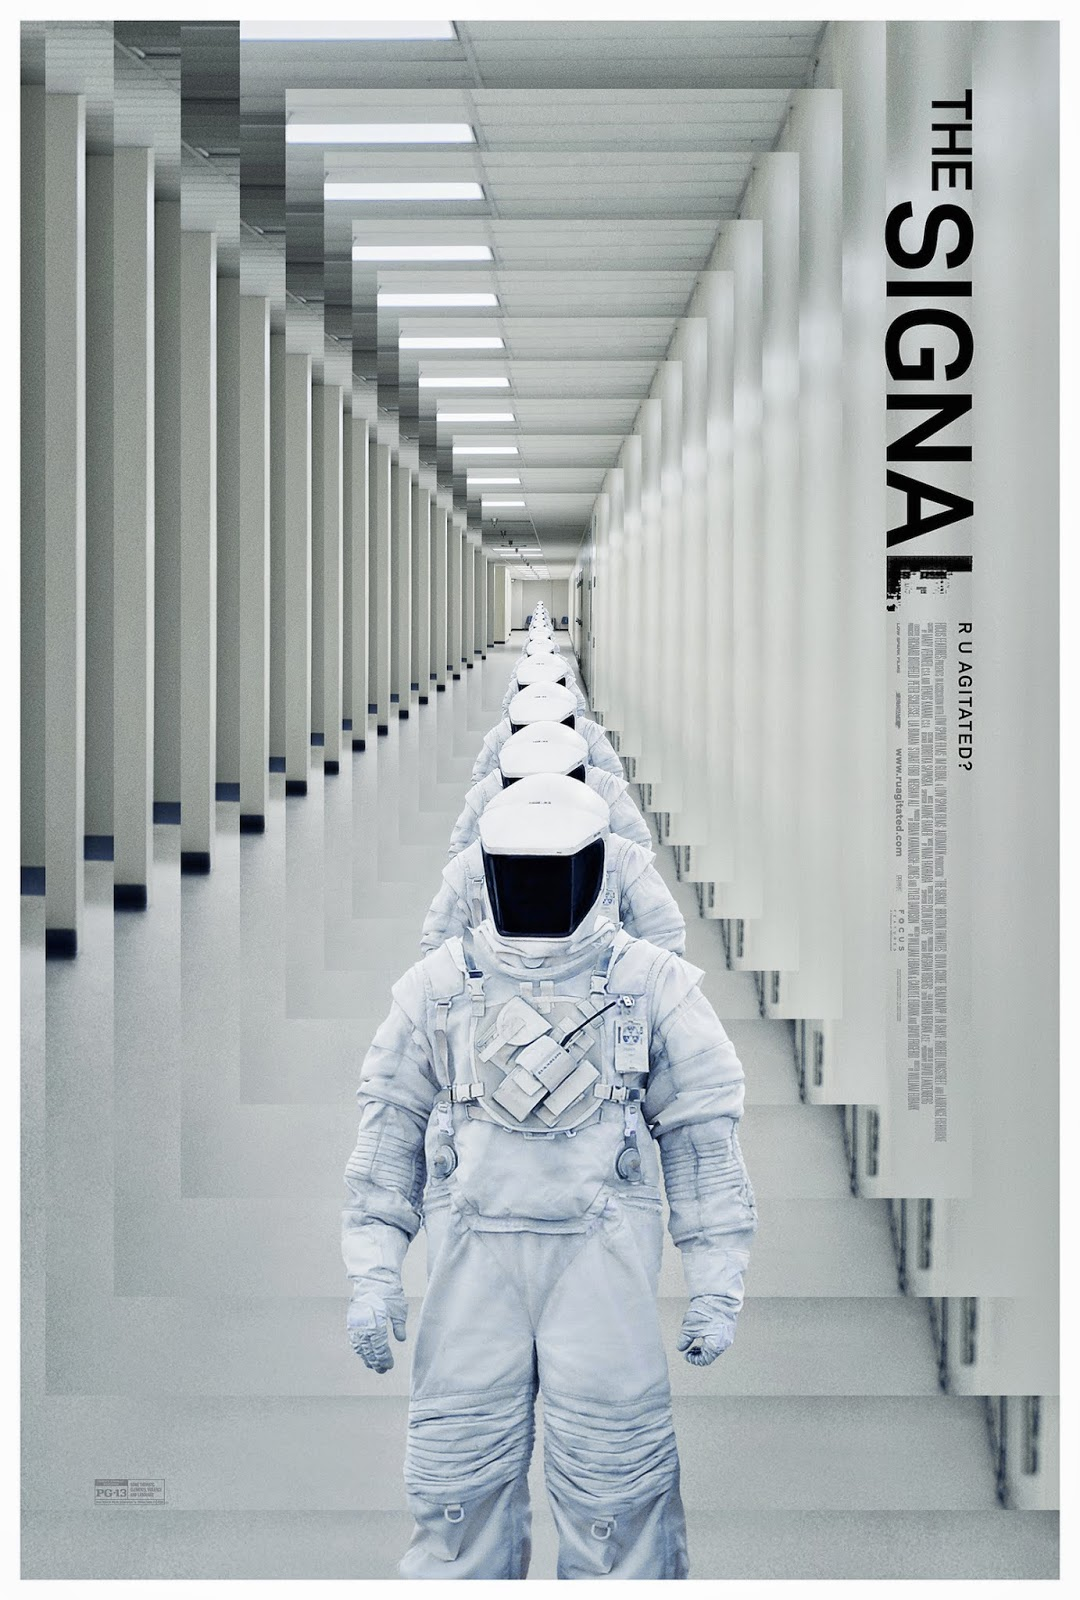 The Signal - Poster | A Constantly Racing Mind